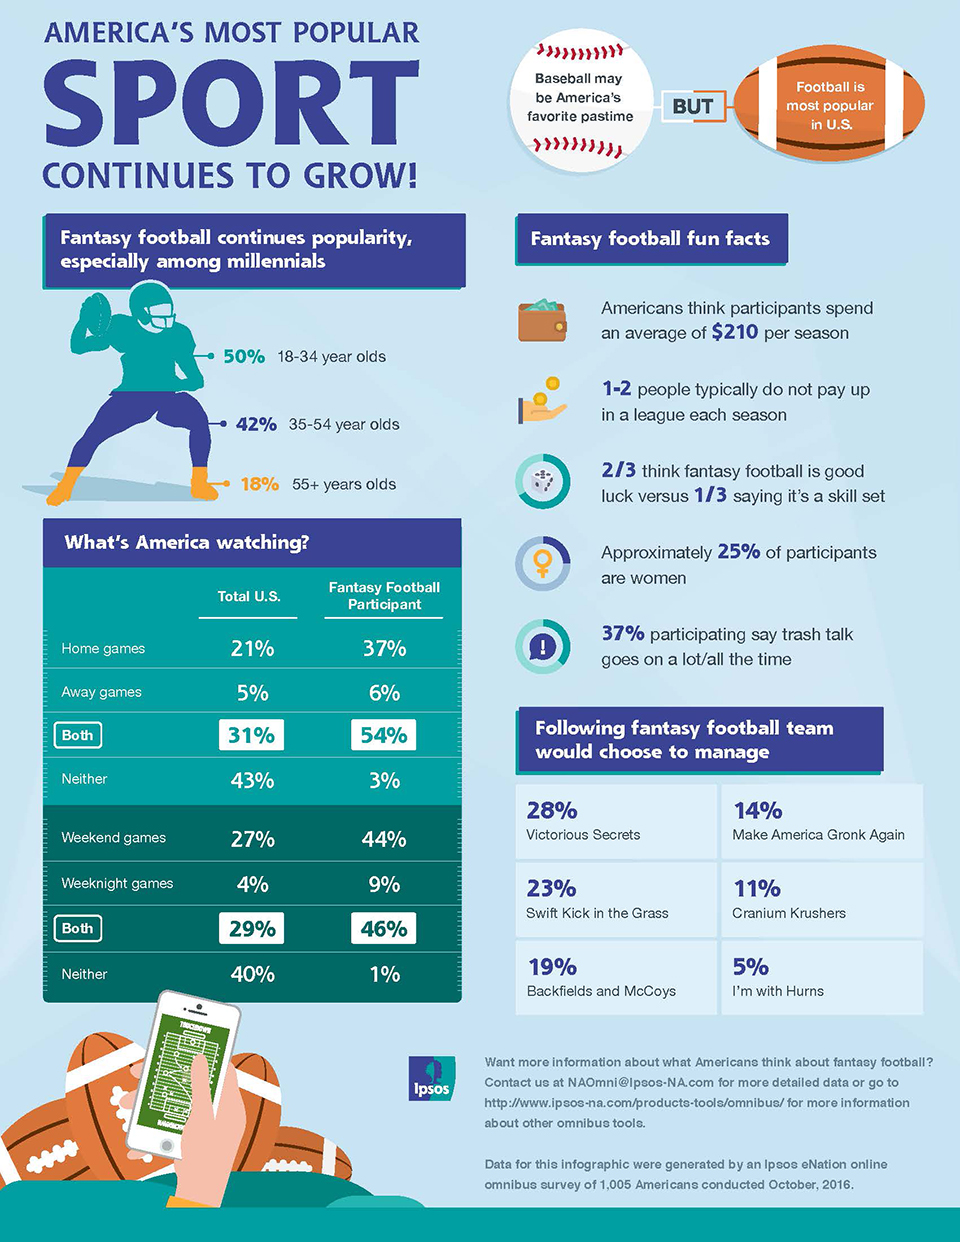 Infographic: America's Most Popular Sport Continues to Grow!